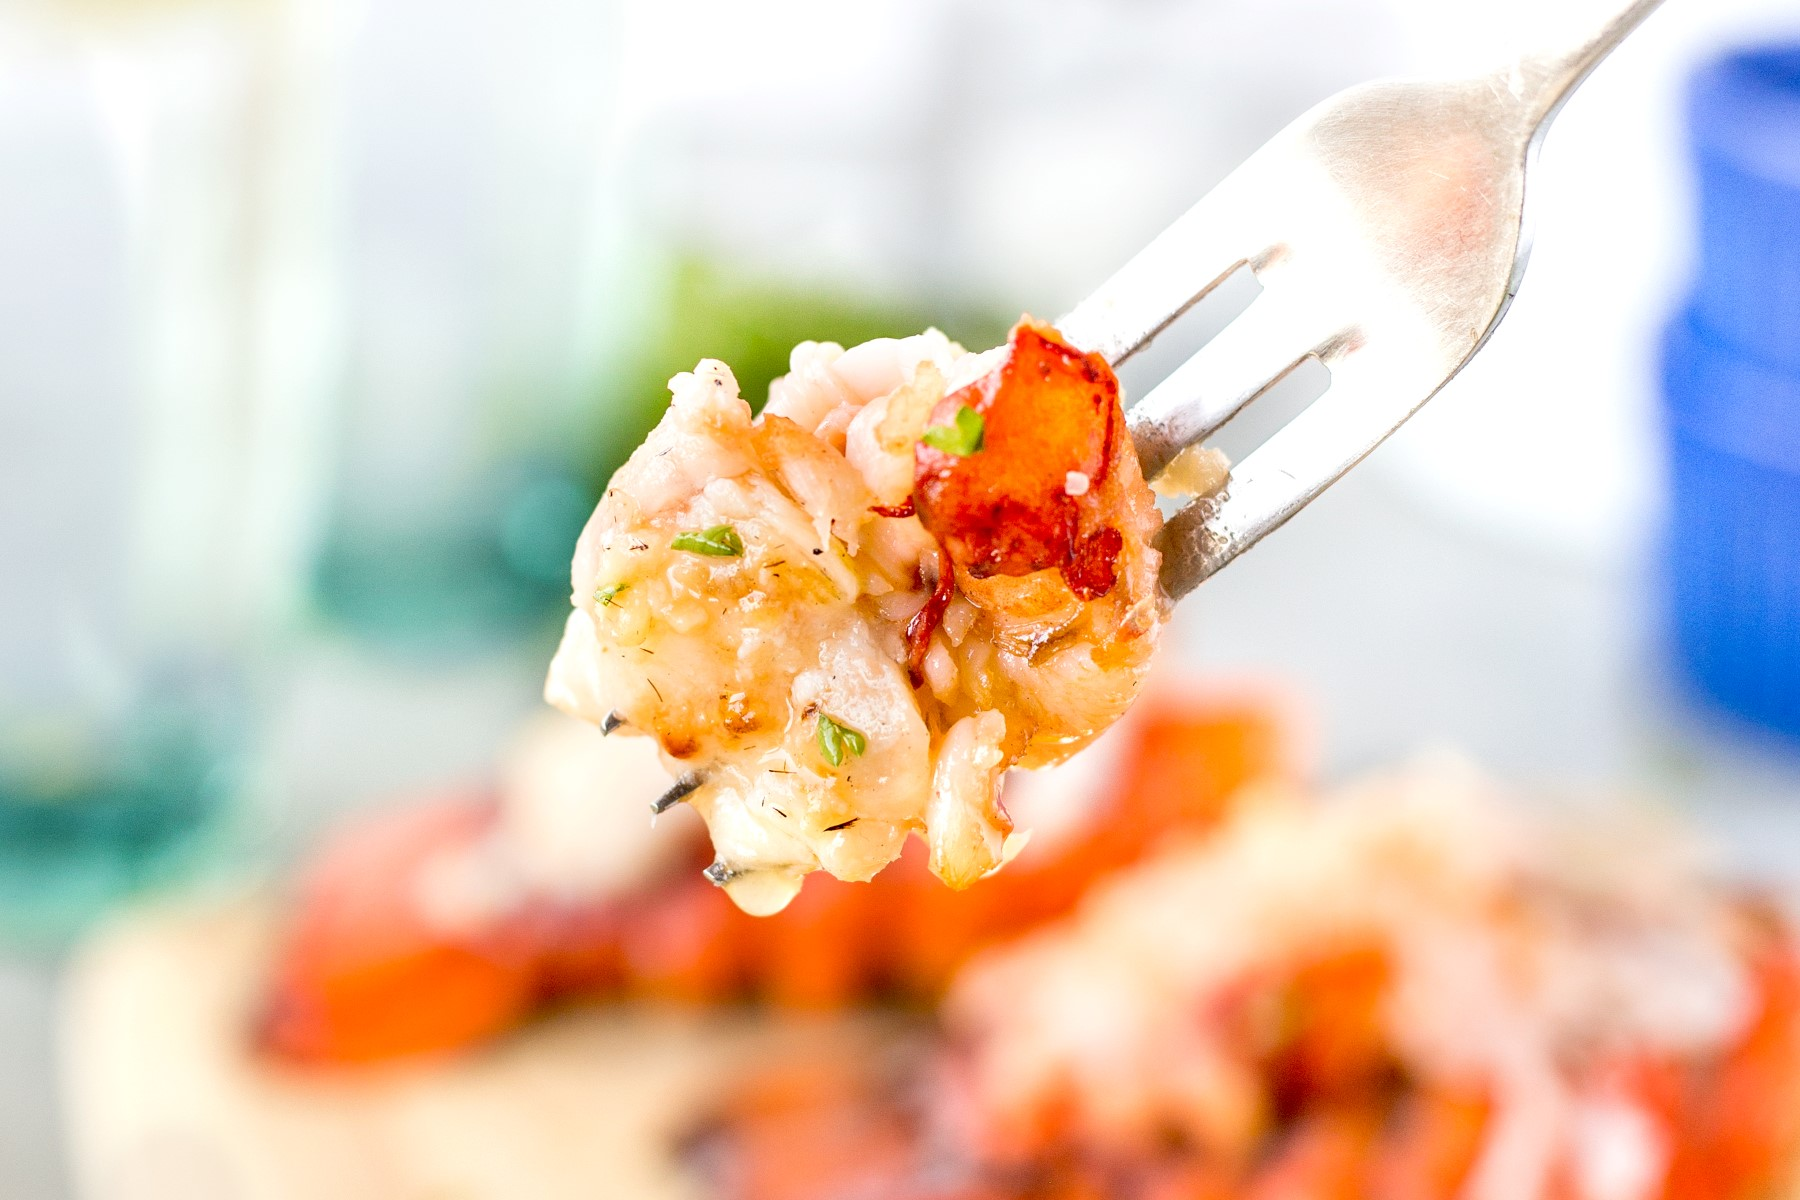 Fork with a large bite of grilled lobster meat dripping with melted butter.